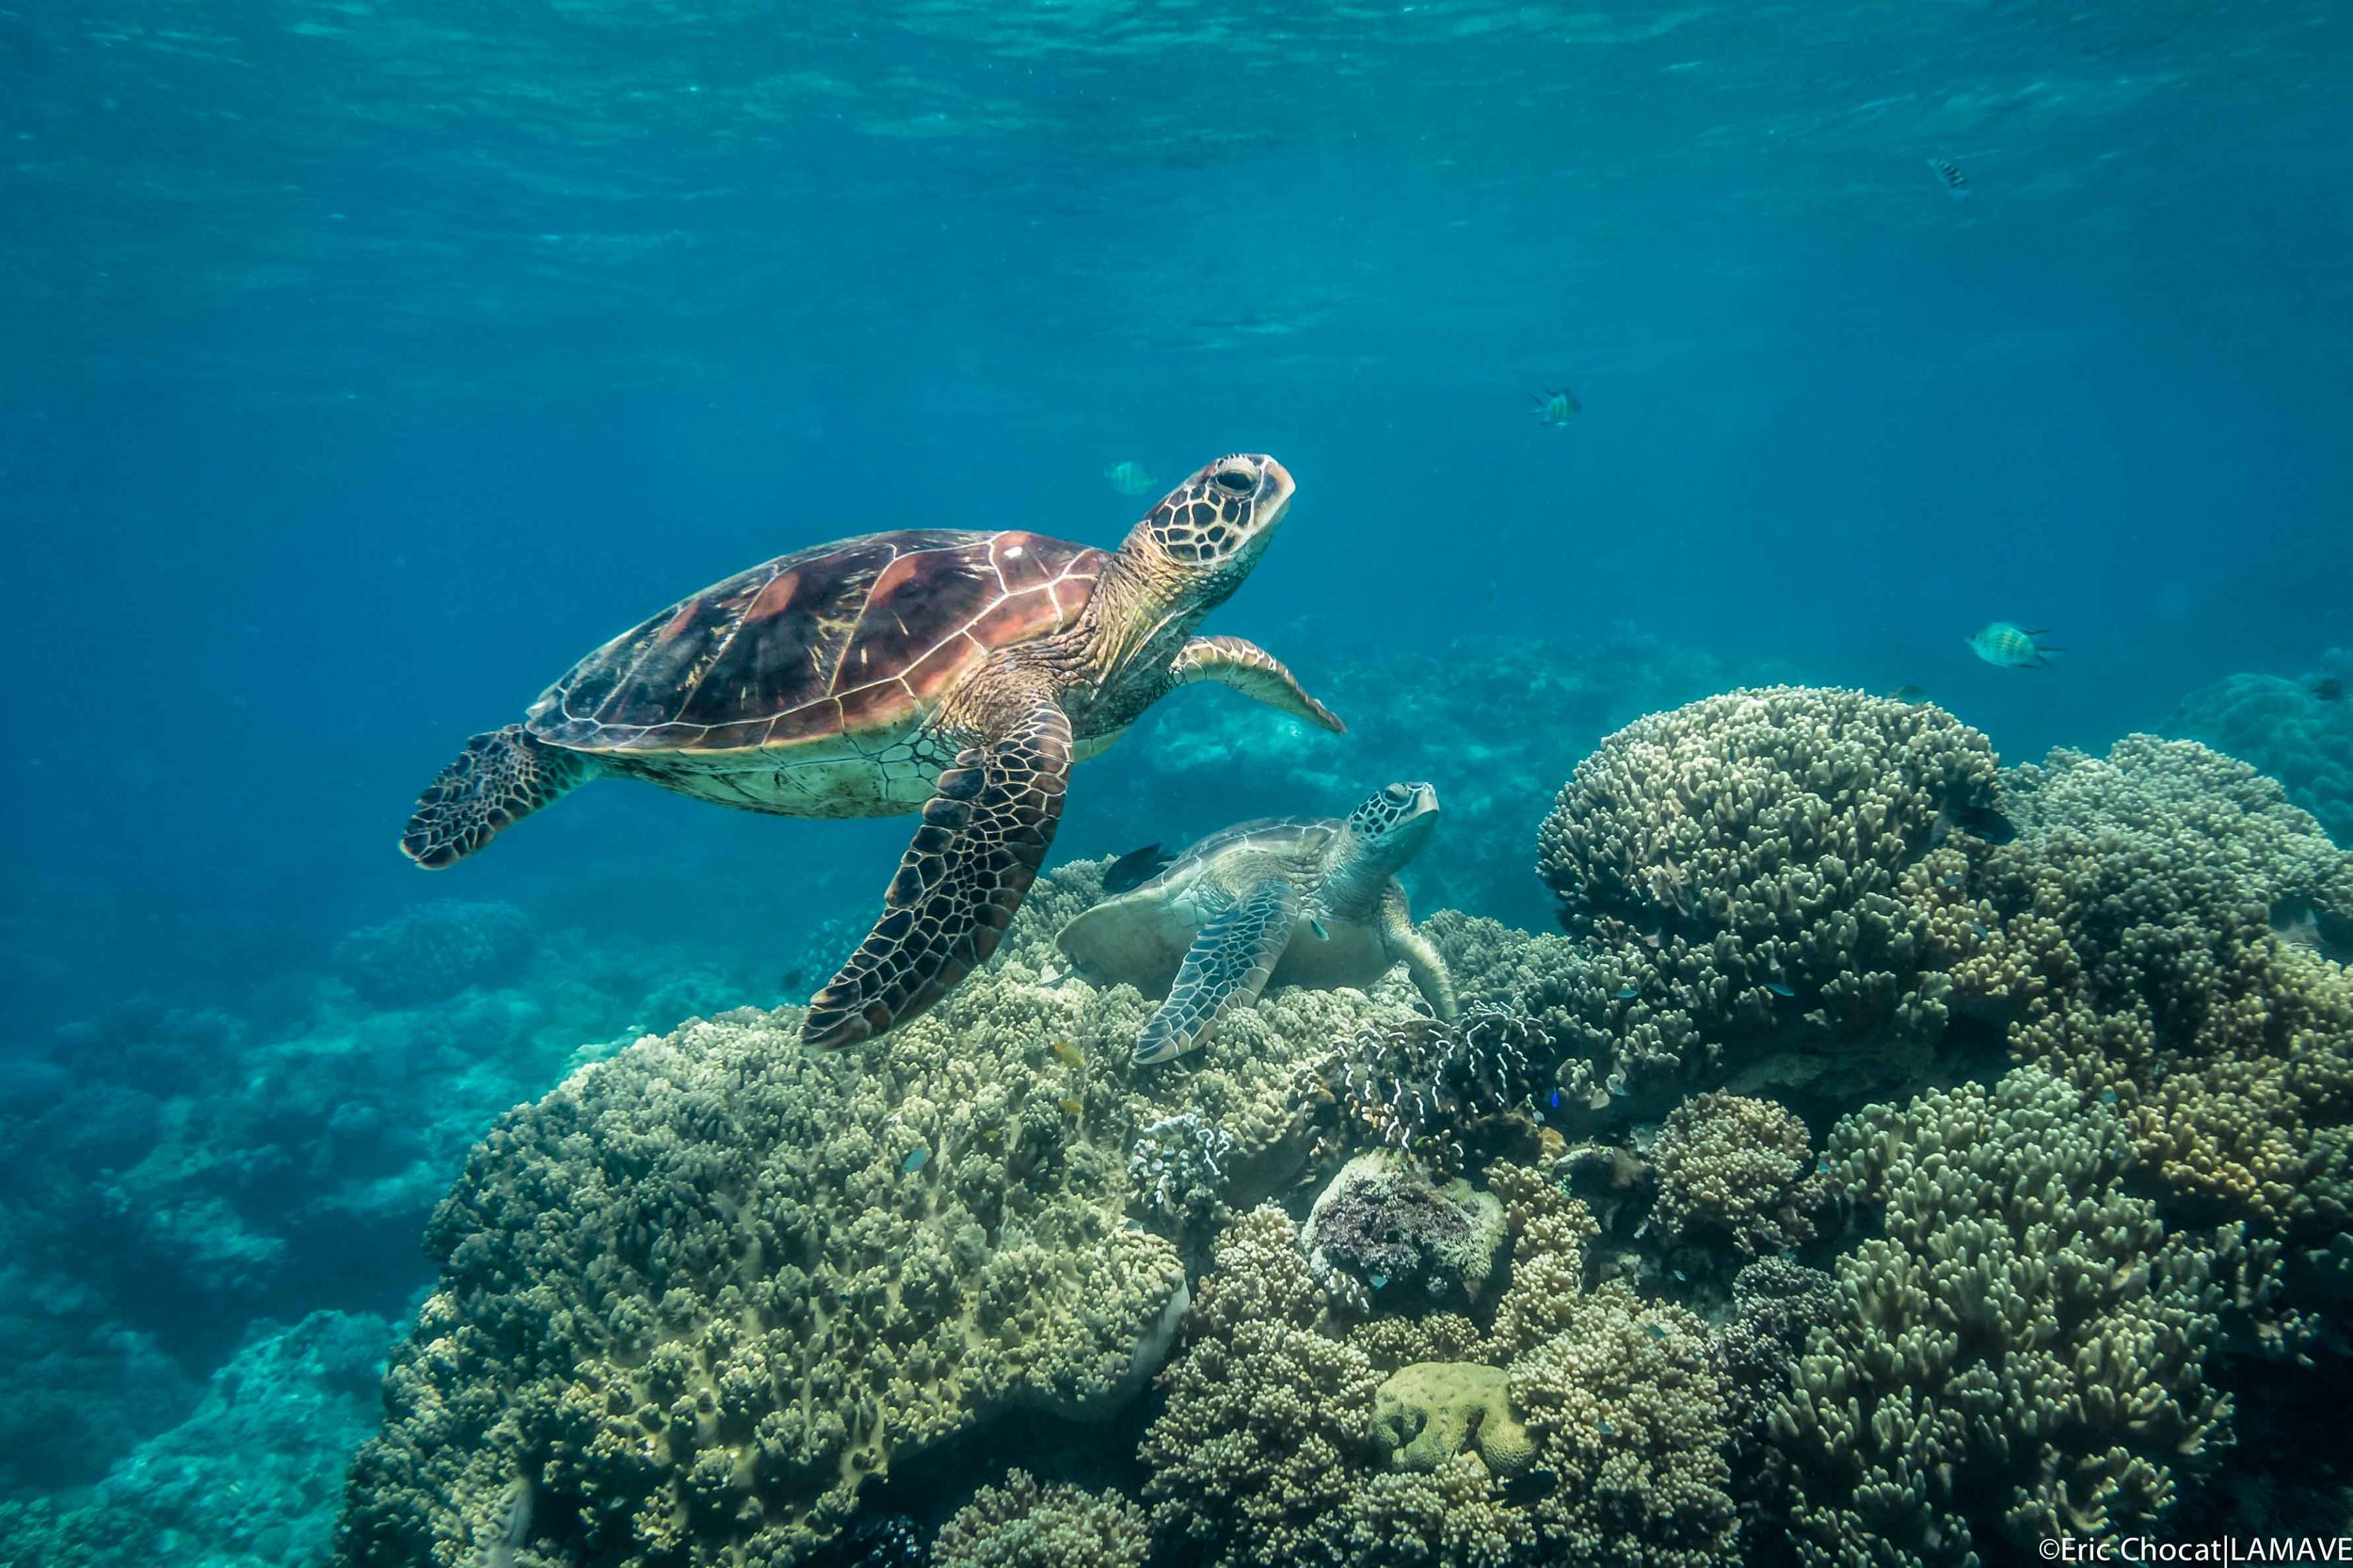 Two green turtles swim amongst the coral of Apo Island.